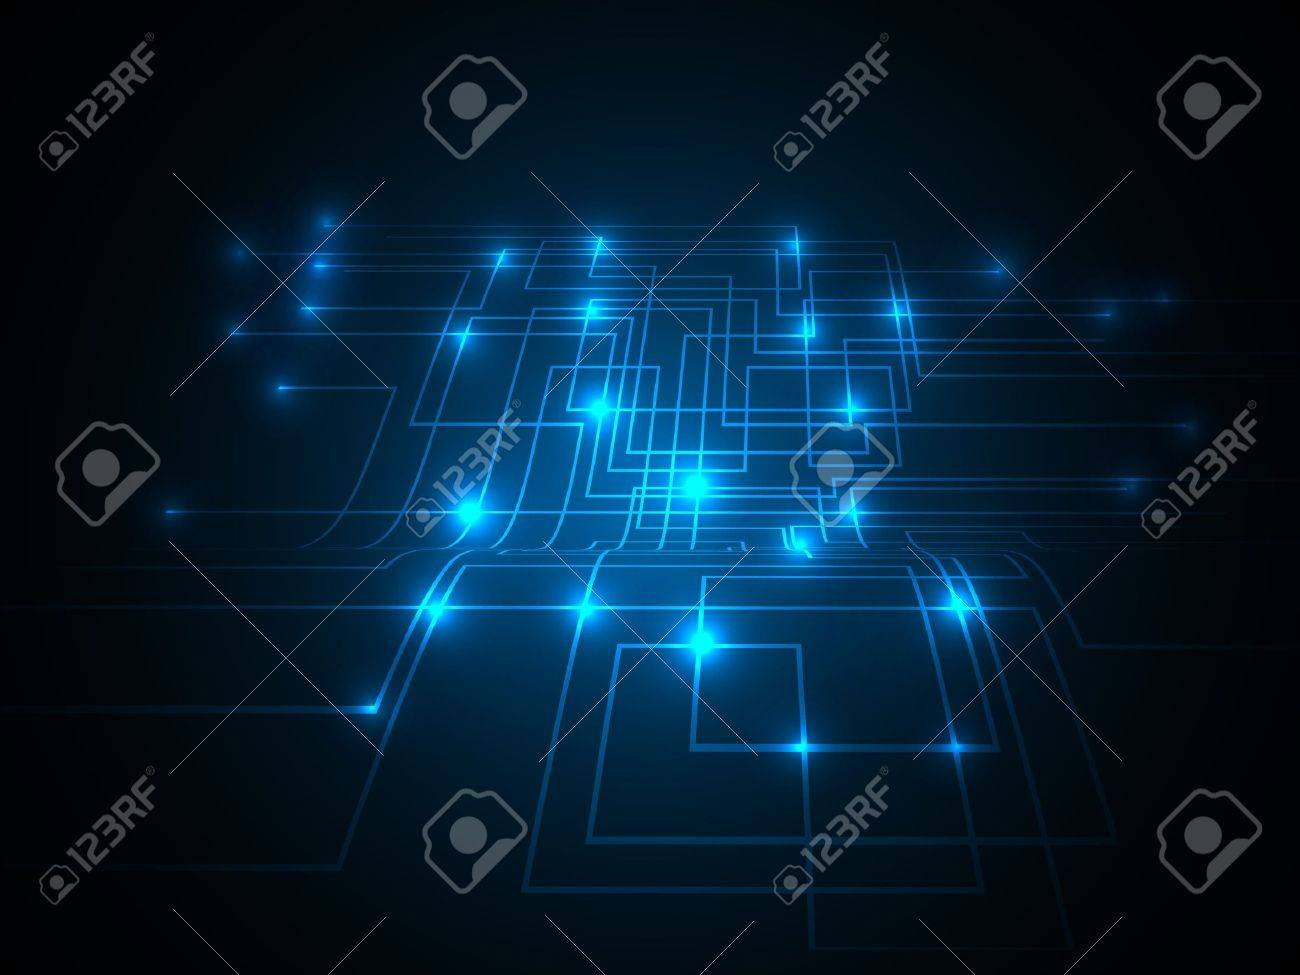 3D Colorful Network  Design Stock Vector - 14430123